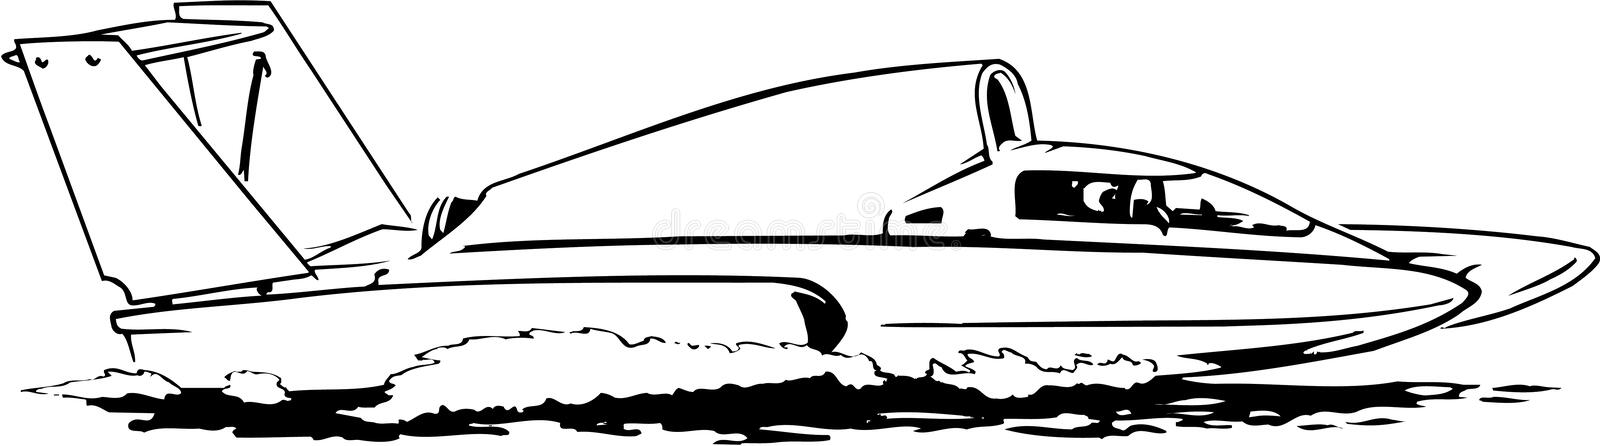 Hydroplane Vectorillustratie stock illustratie